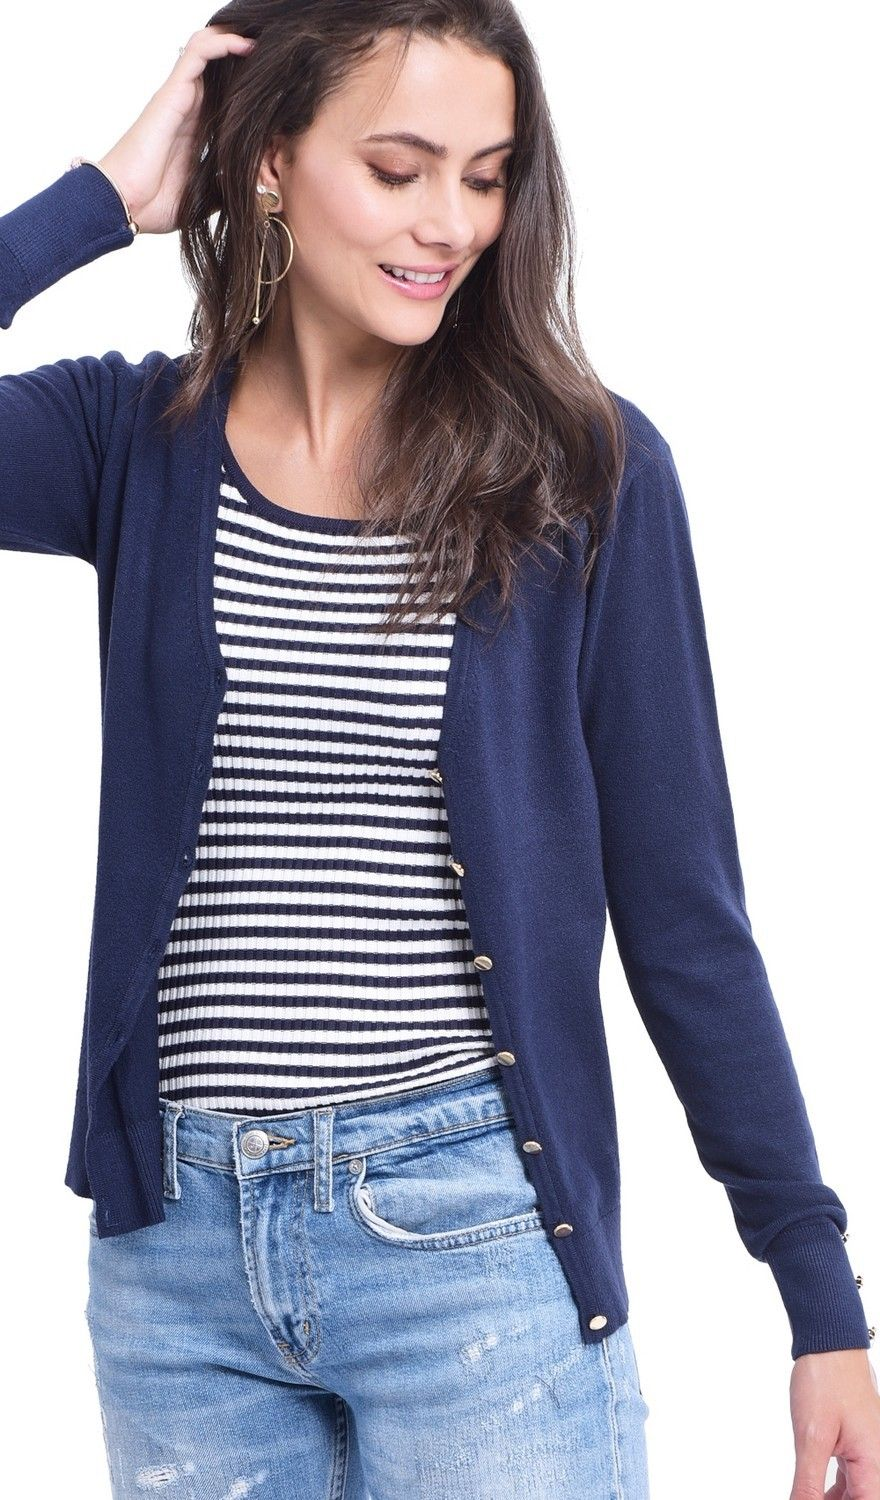 Assuili V-neck Cardigan with Gold Buttons in Navy